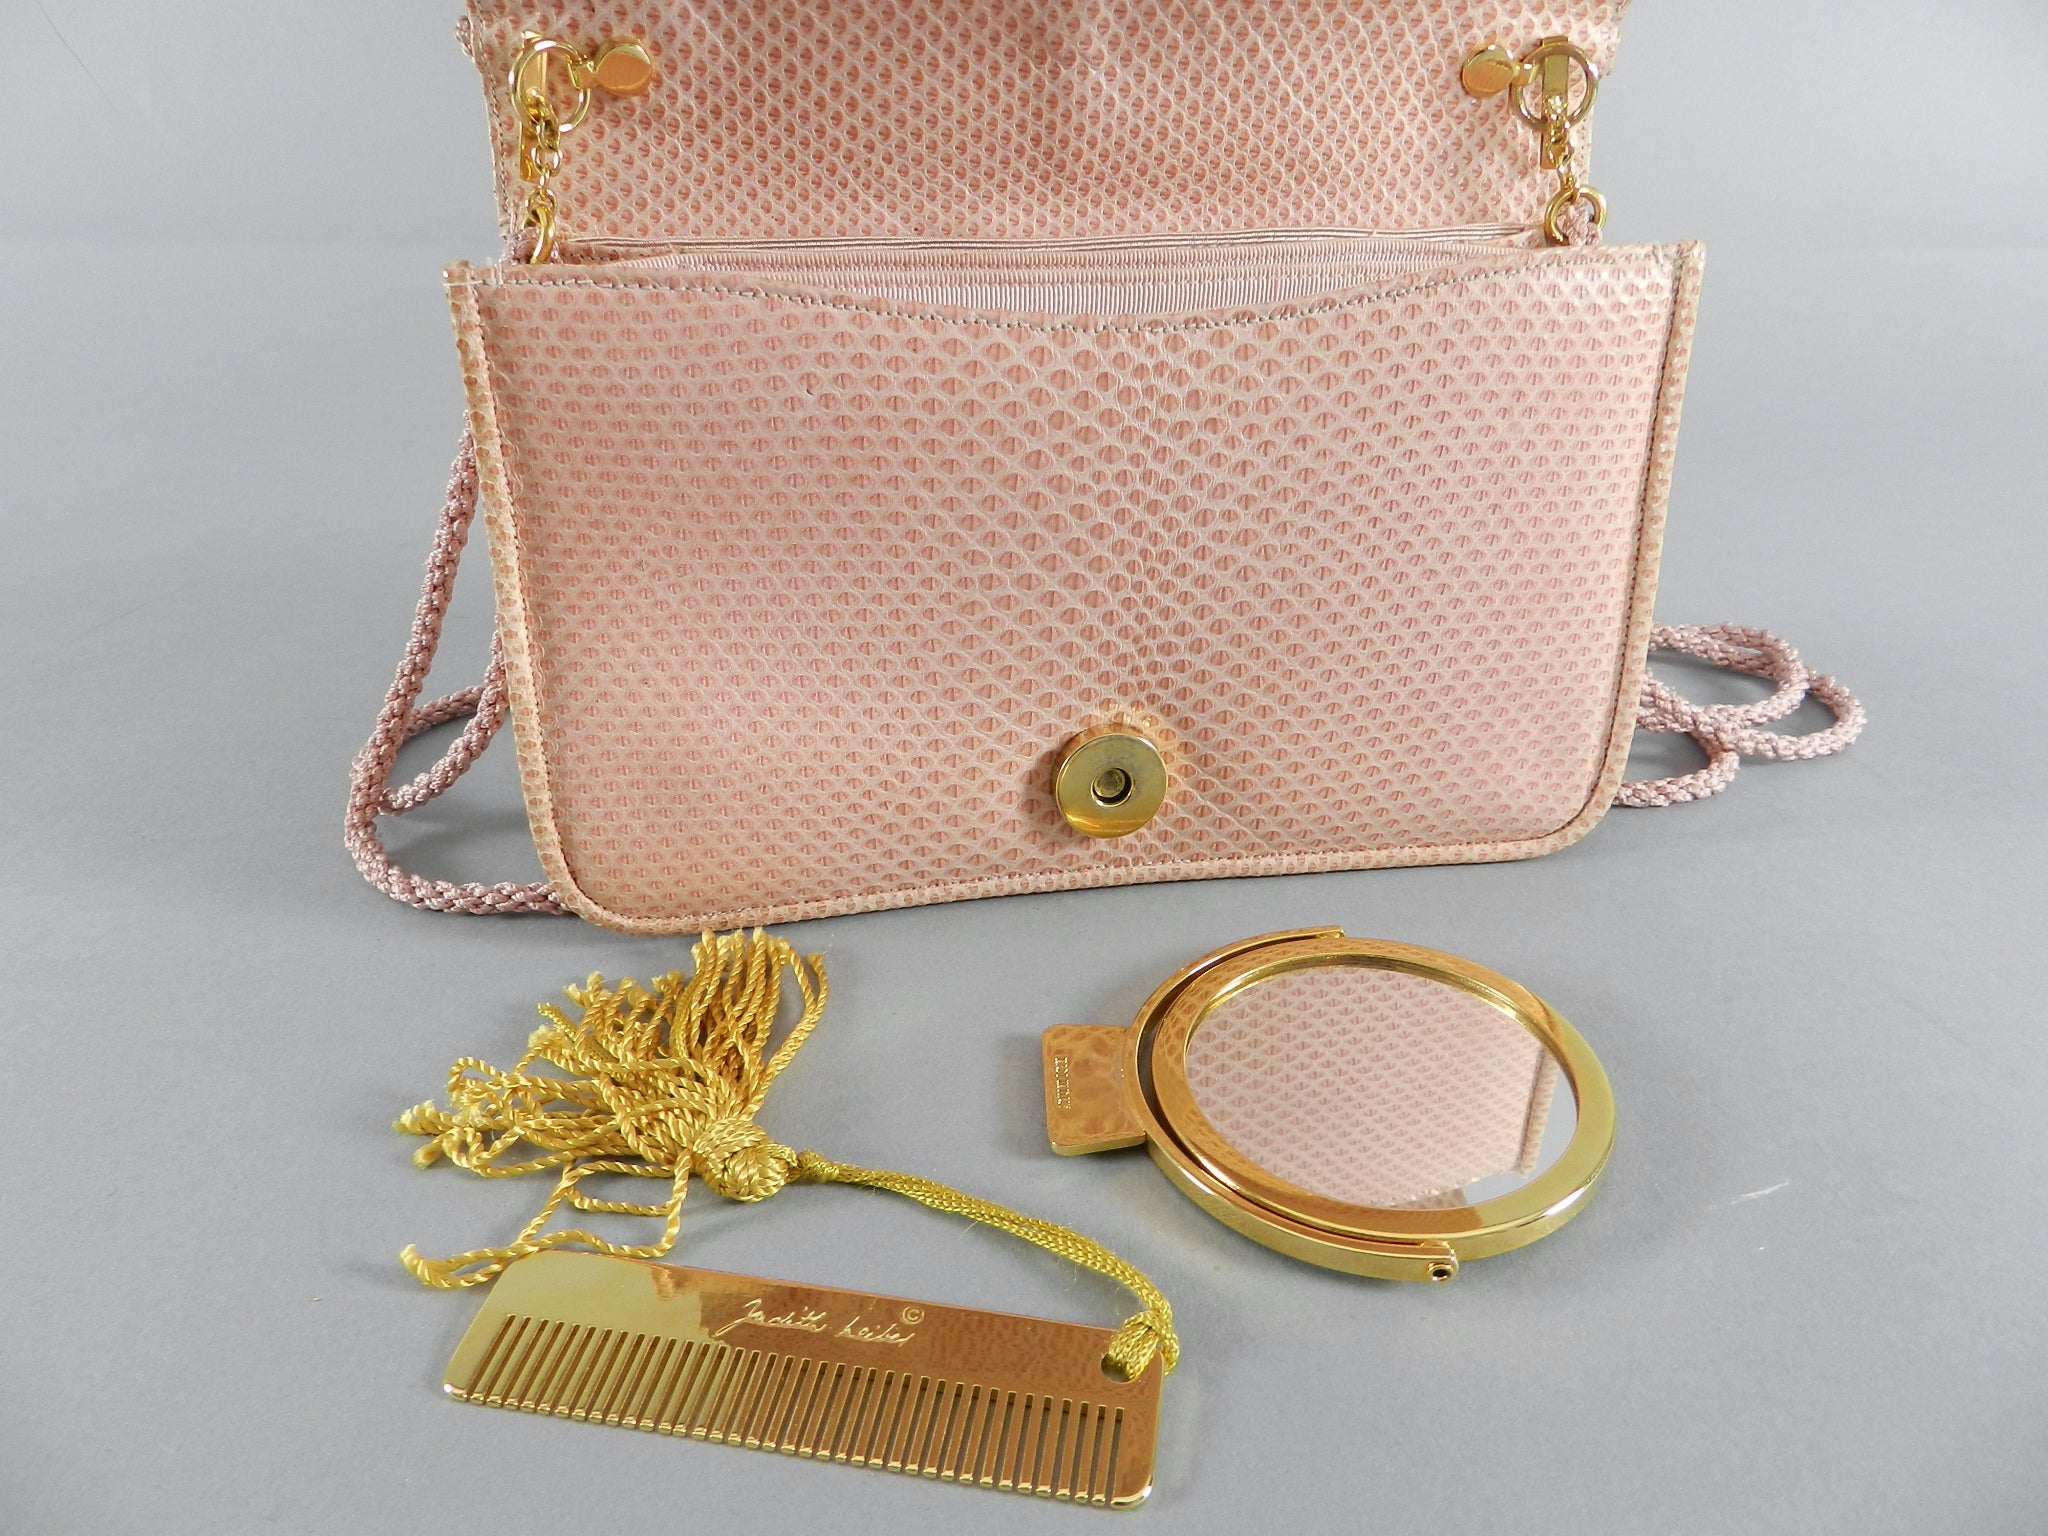 Judith Leiber Pink Lizard Bag With Tassels abK8X0N